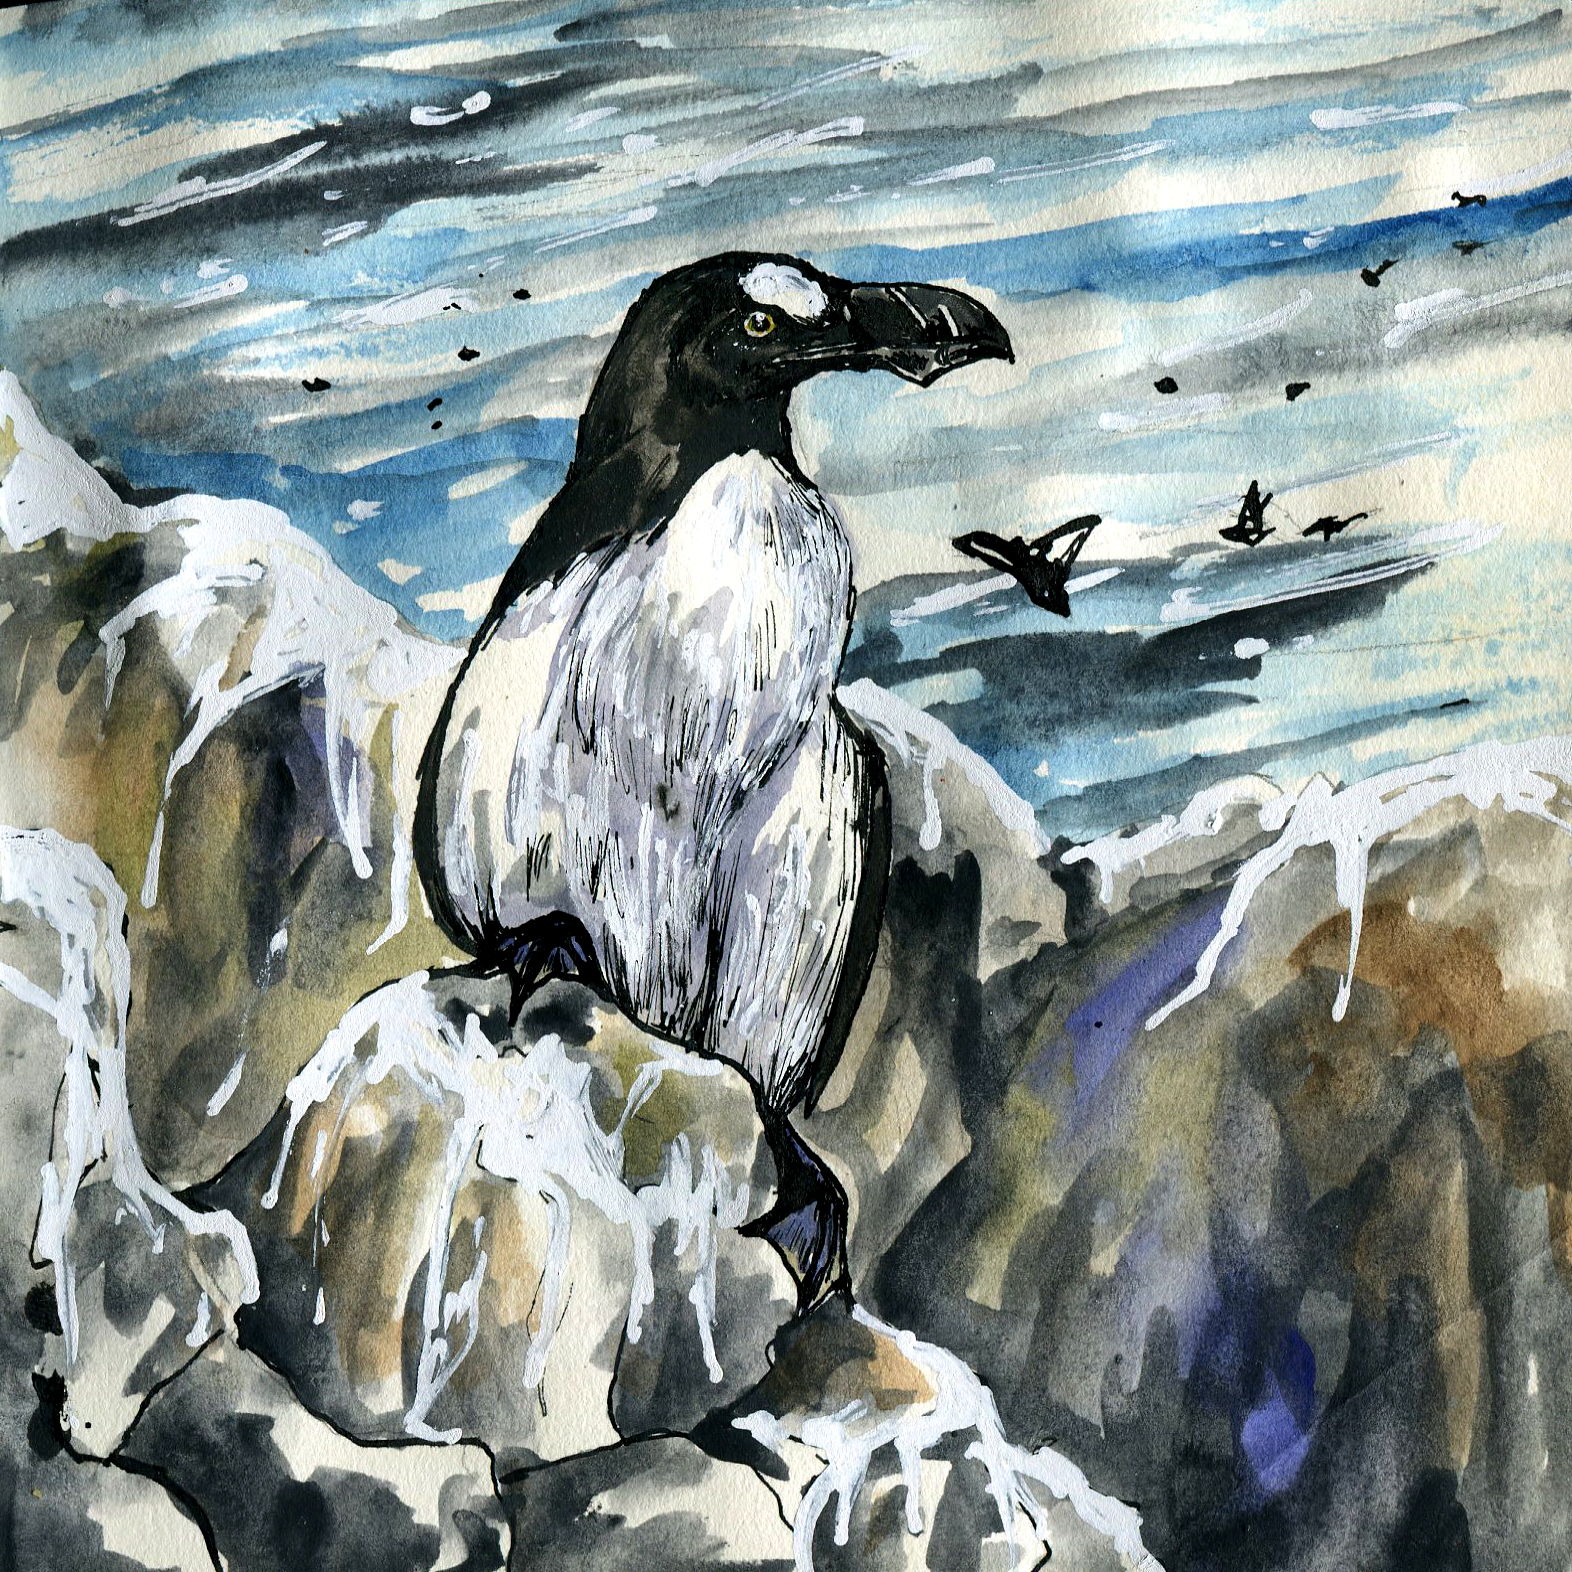 4E. Great Auk